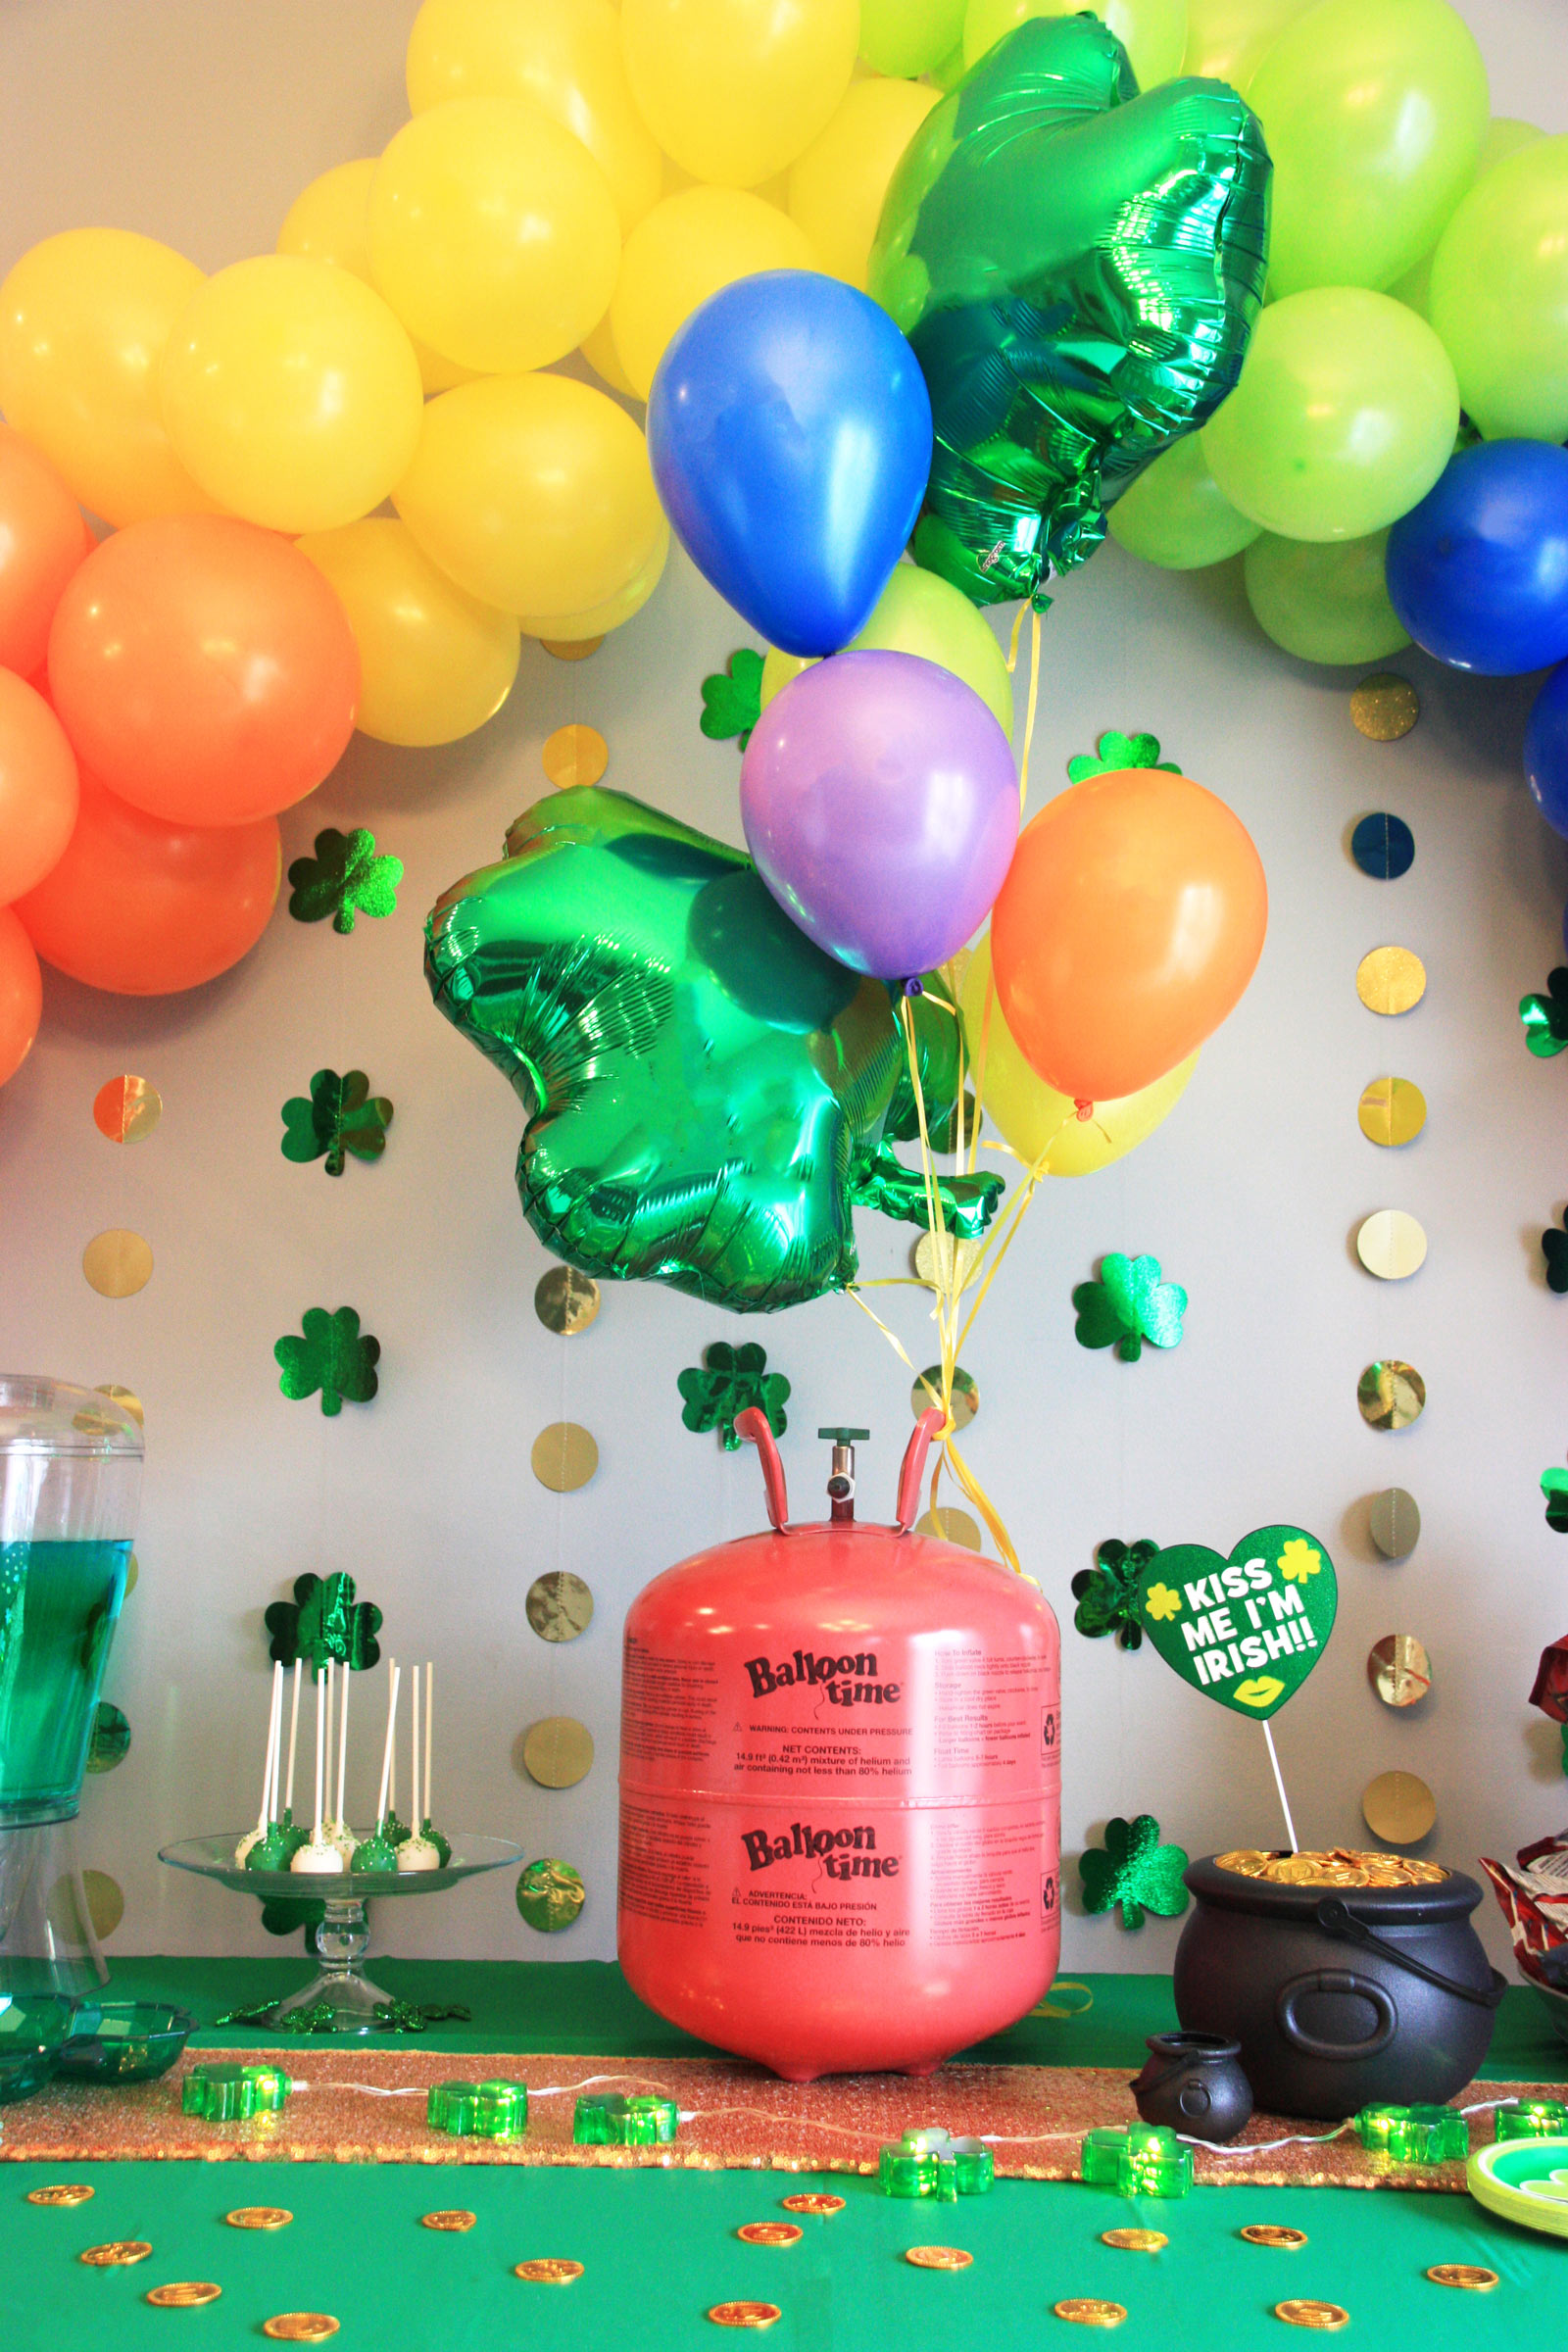 St. Patrick's Day party theme decorations